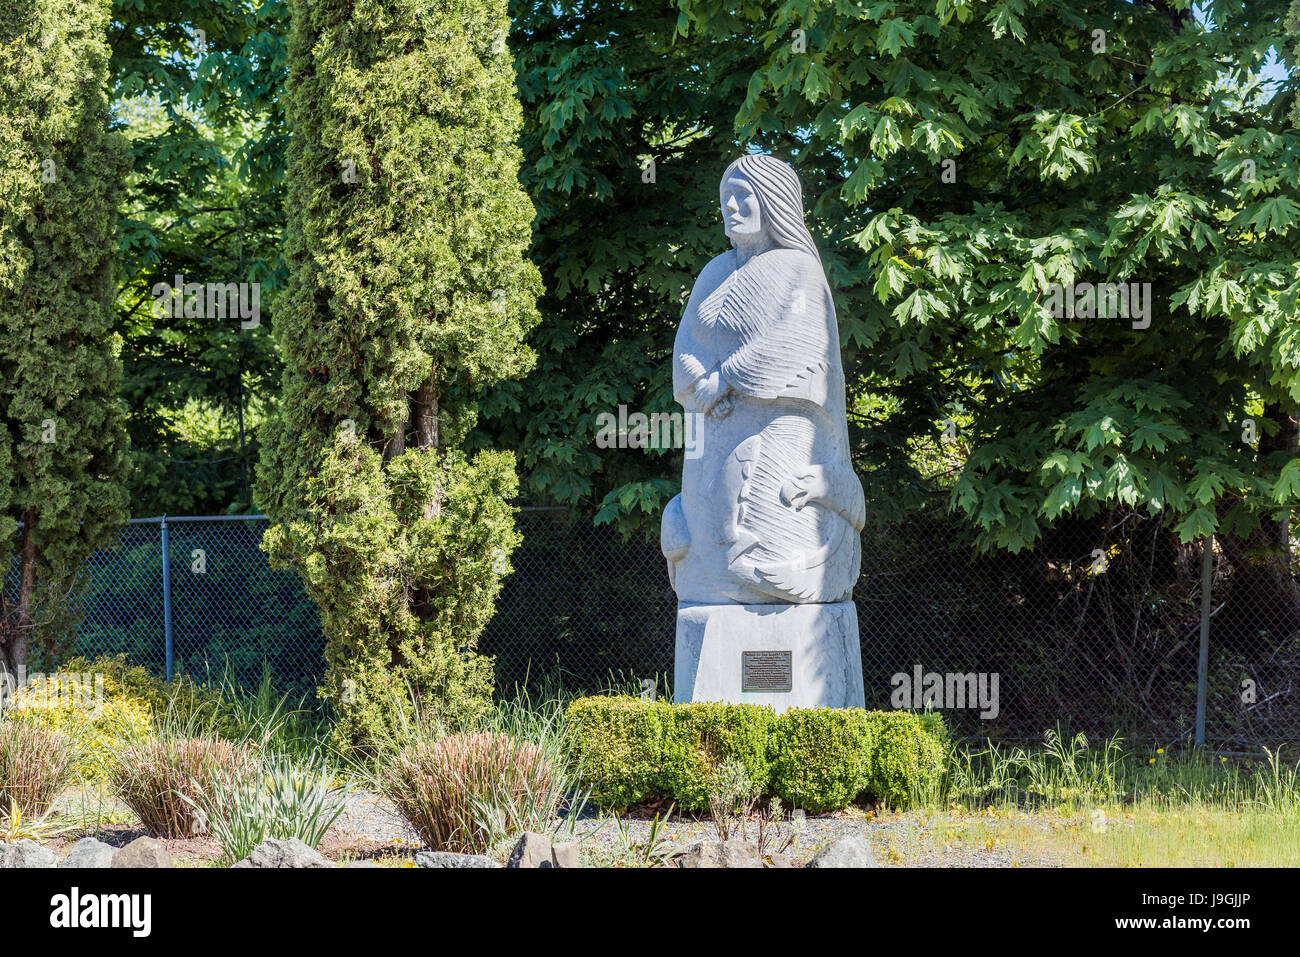 Marble sculpture by Daniel J Cline, Chemainus, Vancouver Island, British Columbia, Canada Stock Photo